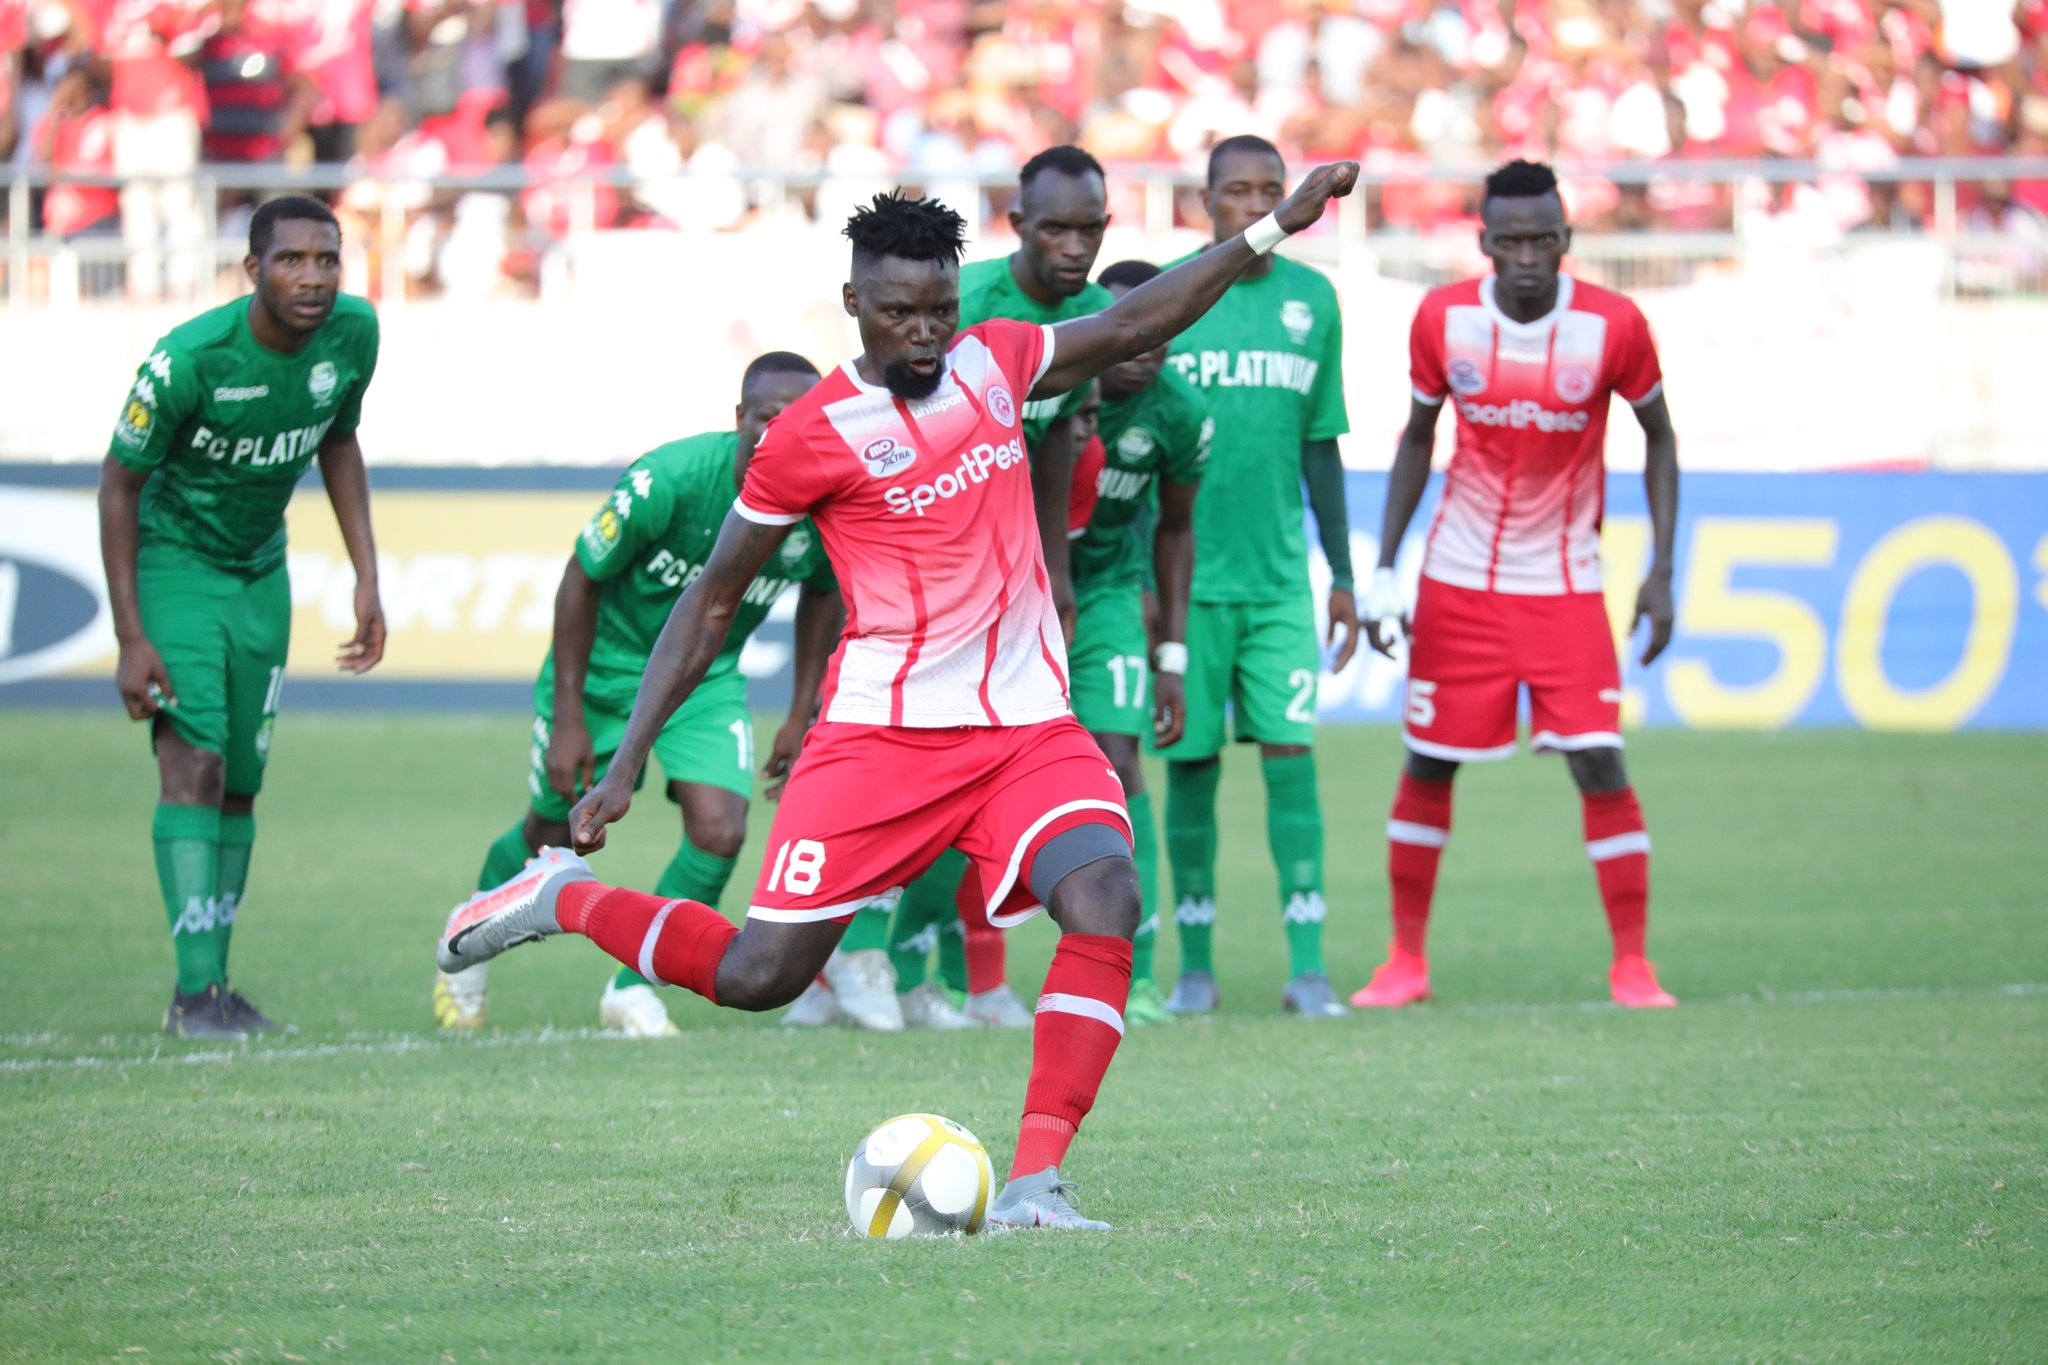 Depleted FC Platinum Crash Out Of Champions League Amid Controversy